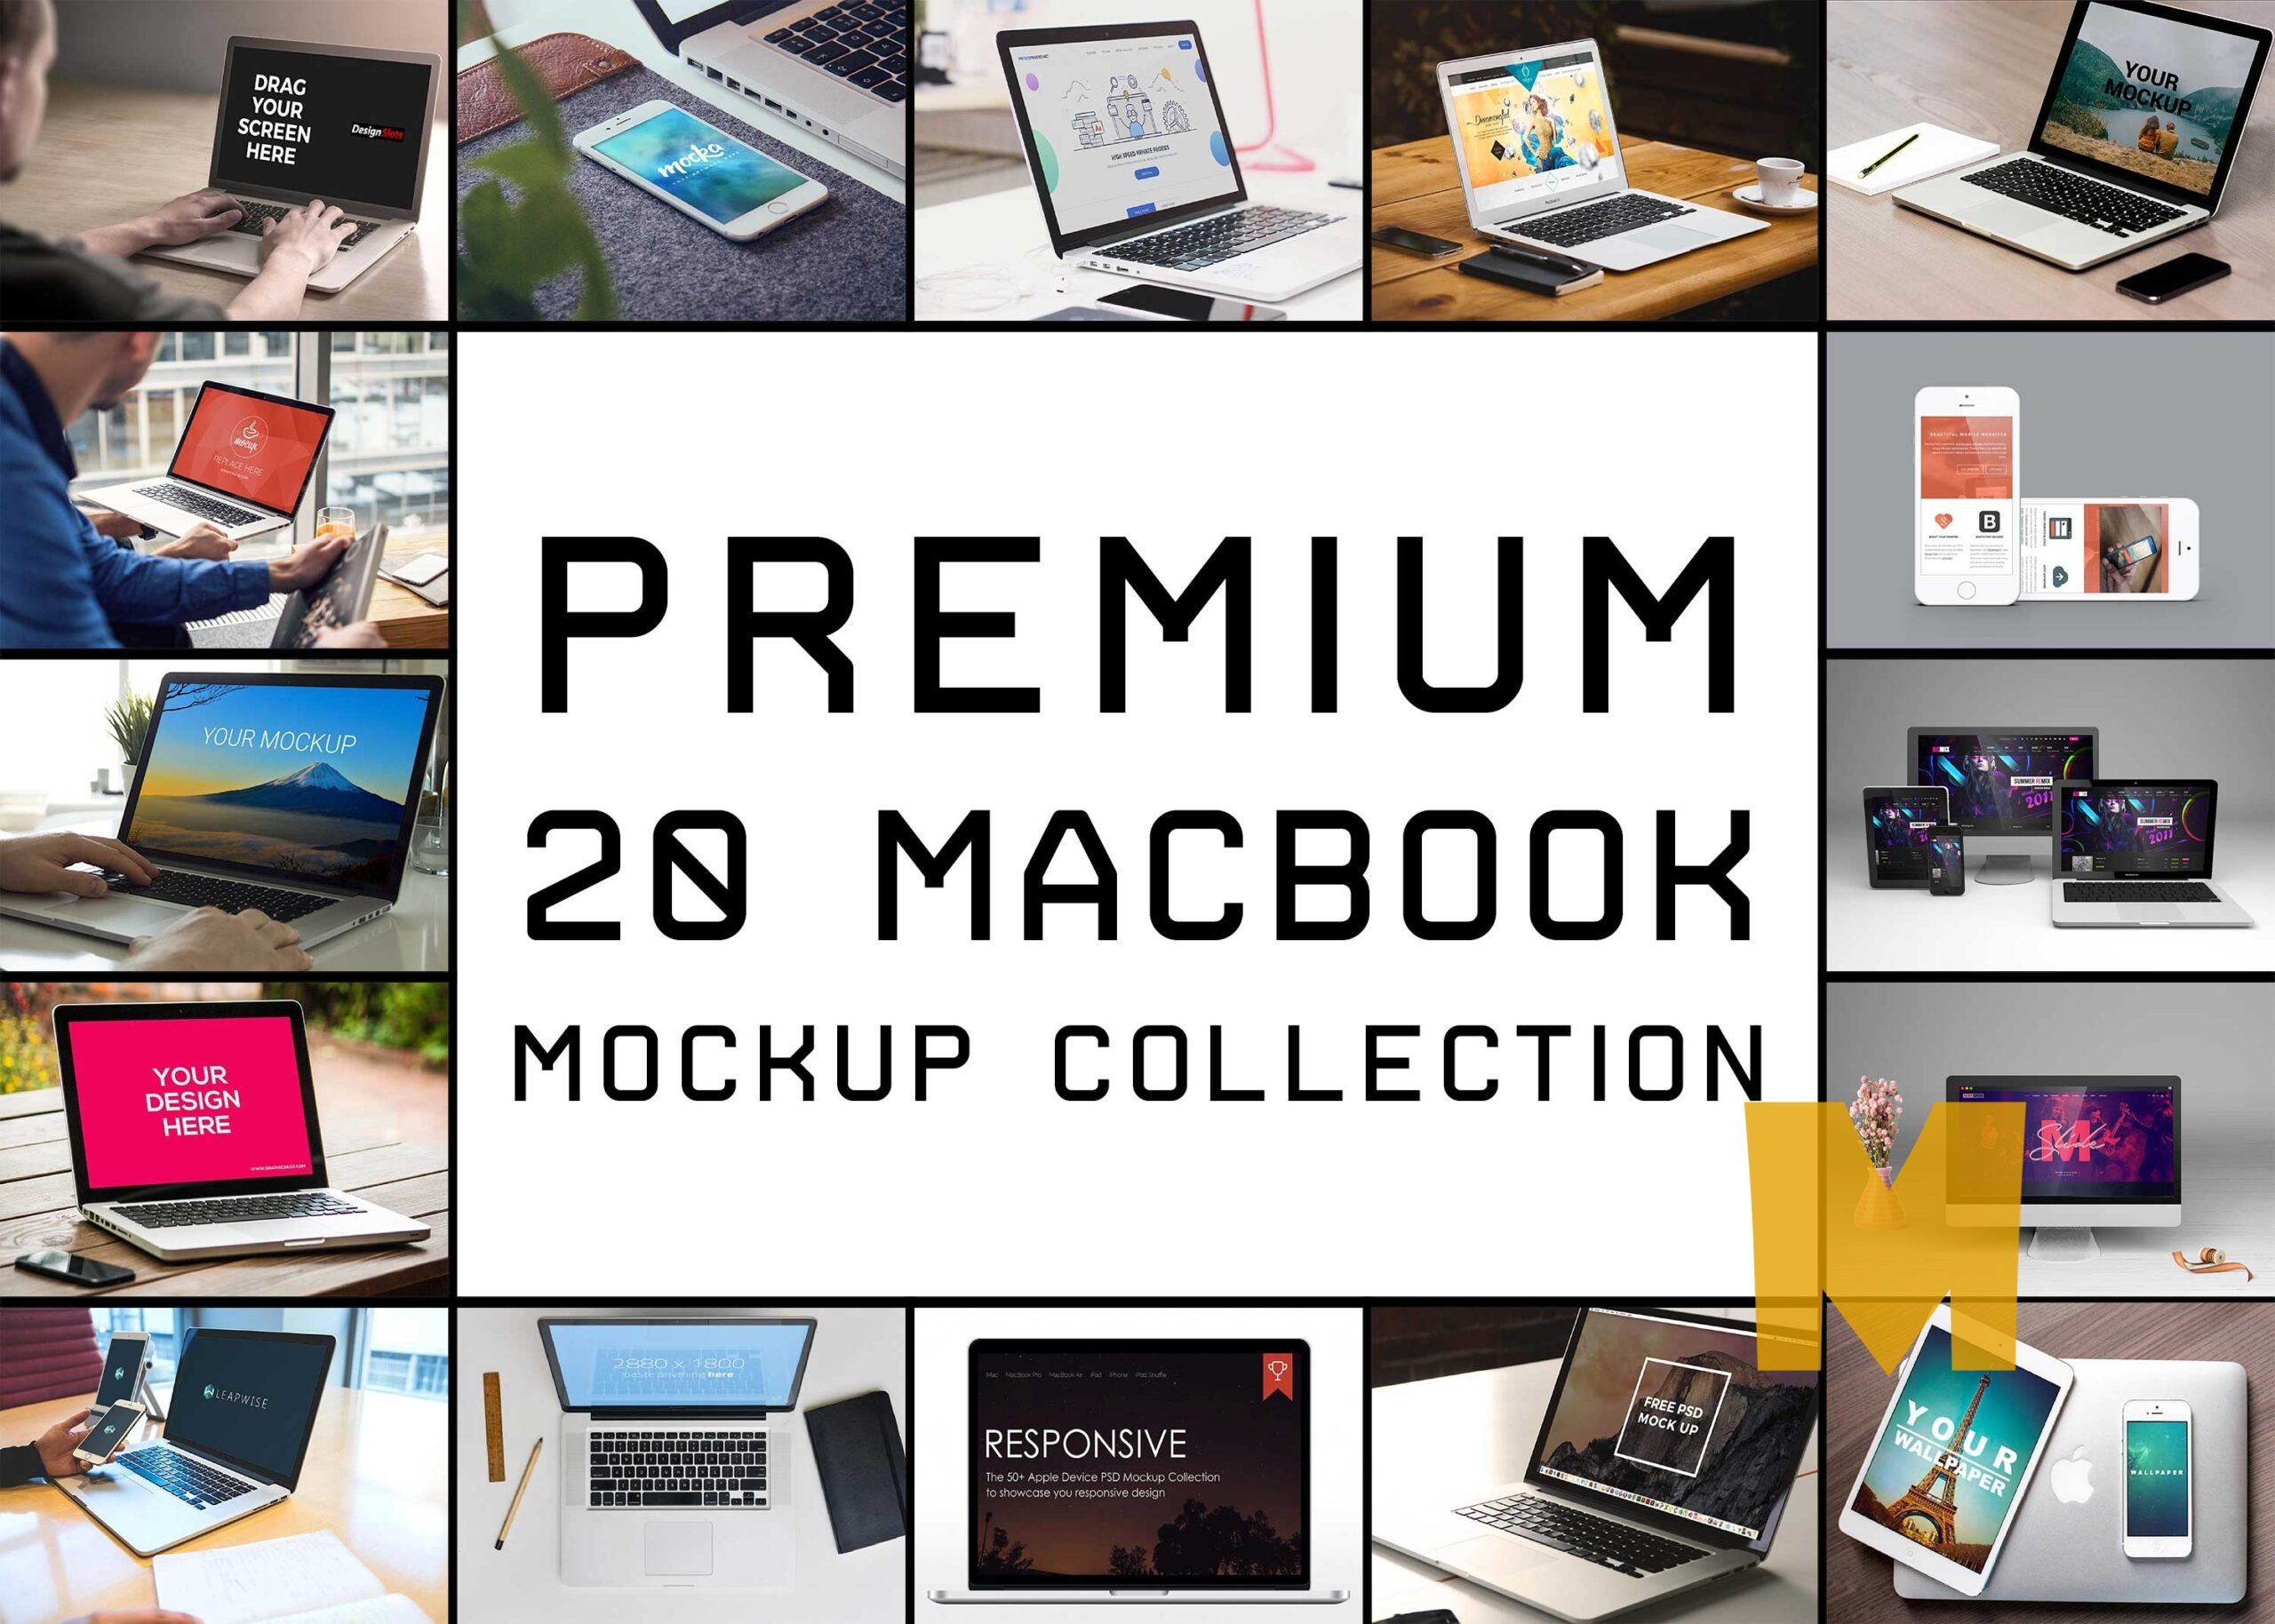 Top 20 Macbook Pro Mockup Collection